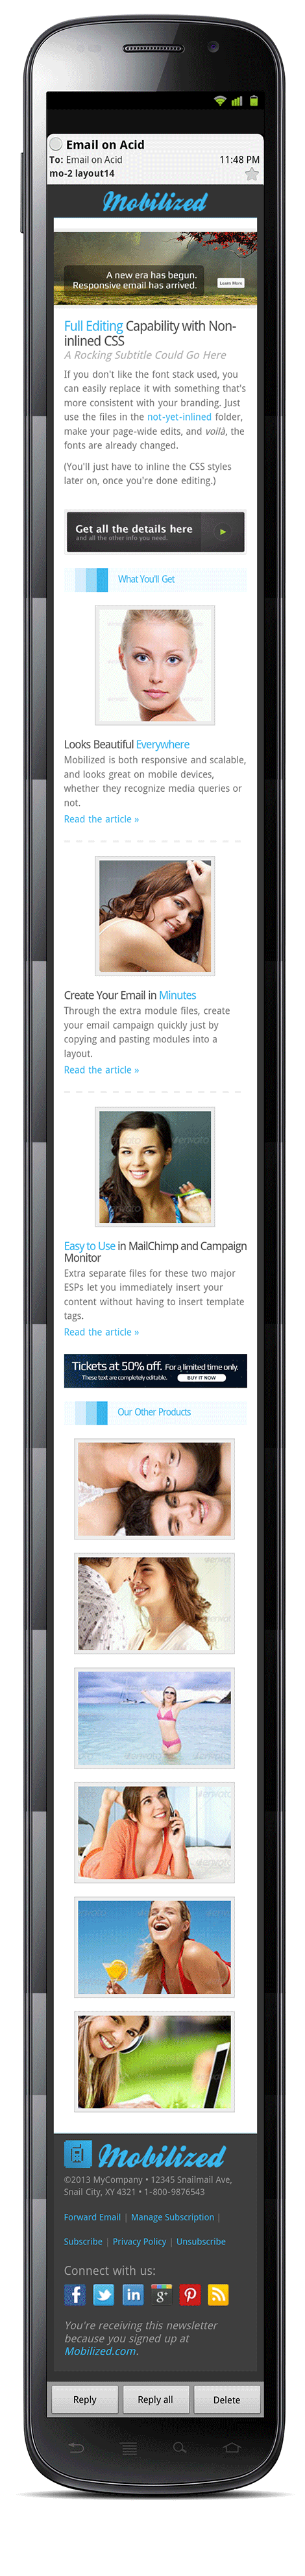 Mobilized-2 - Responsive & Modular Email Templates - Screenshot of layout14 in an Android 2.3 mobile device.